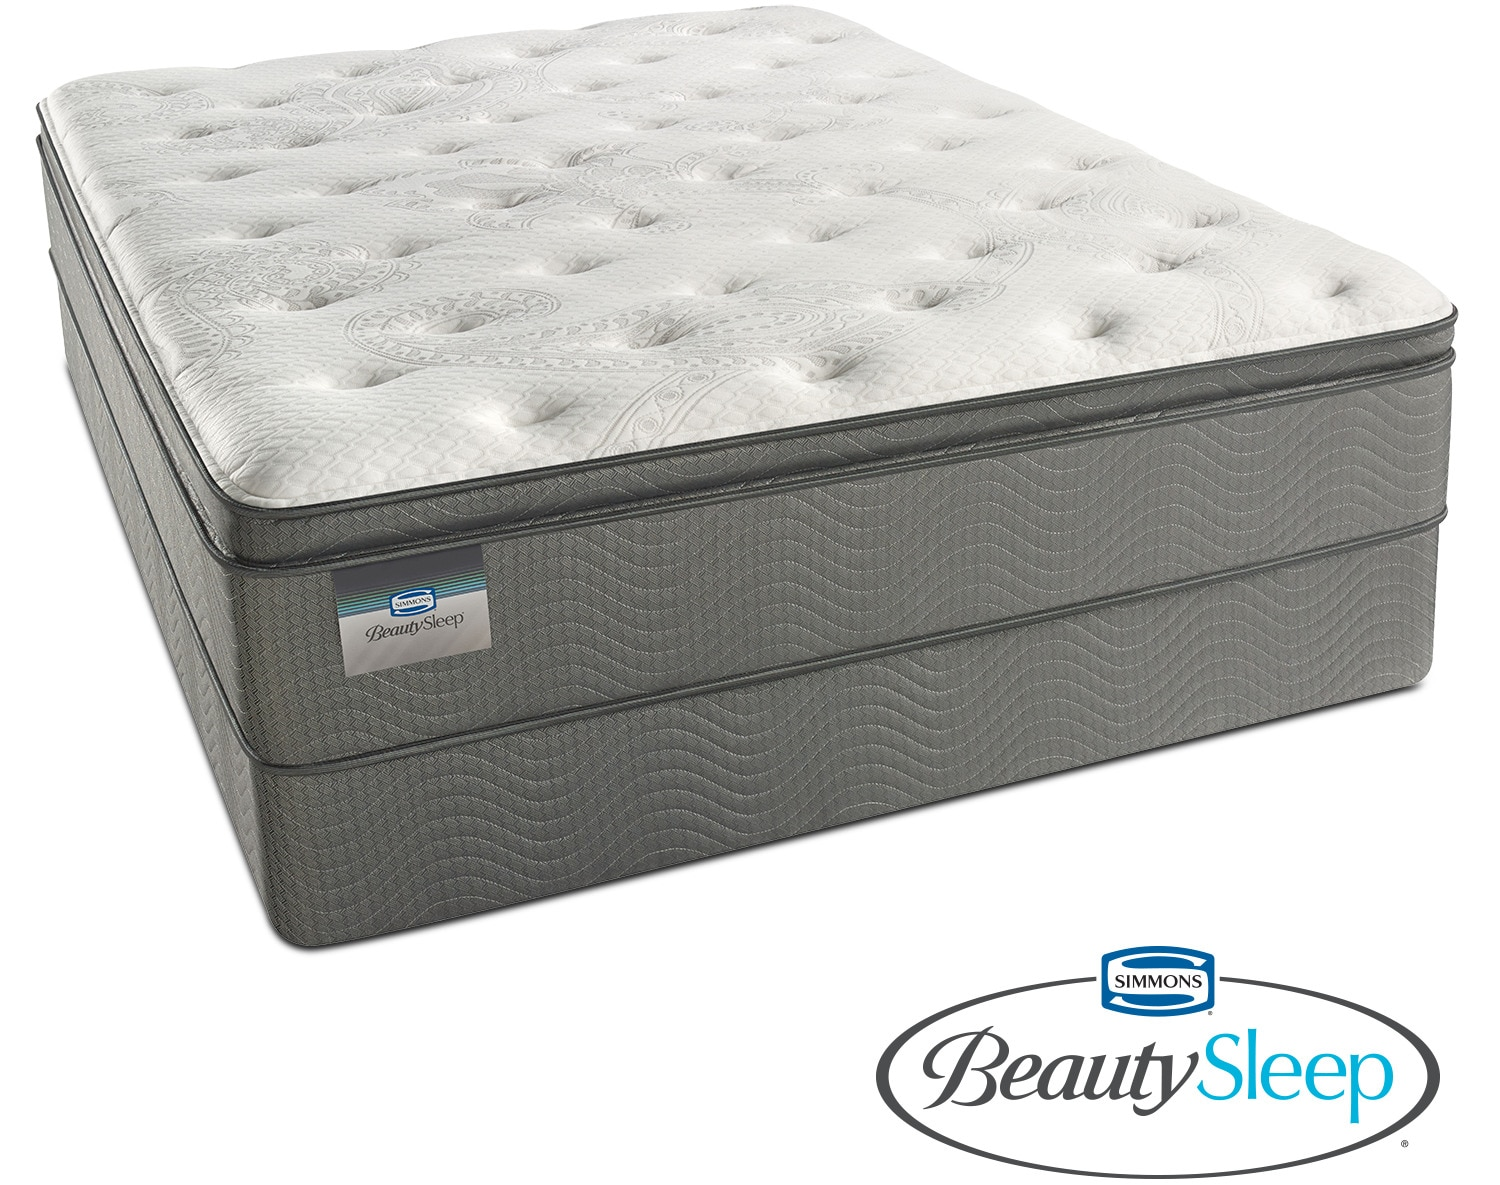 Stags Leap Luxury Firm Pillowtop Queen Mattress And Split Foundation Set American Signature